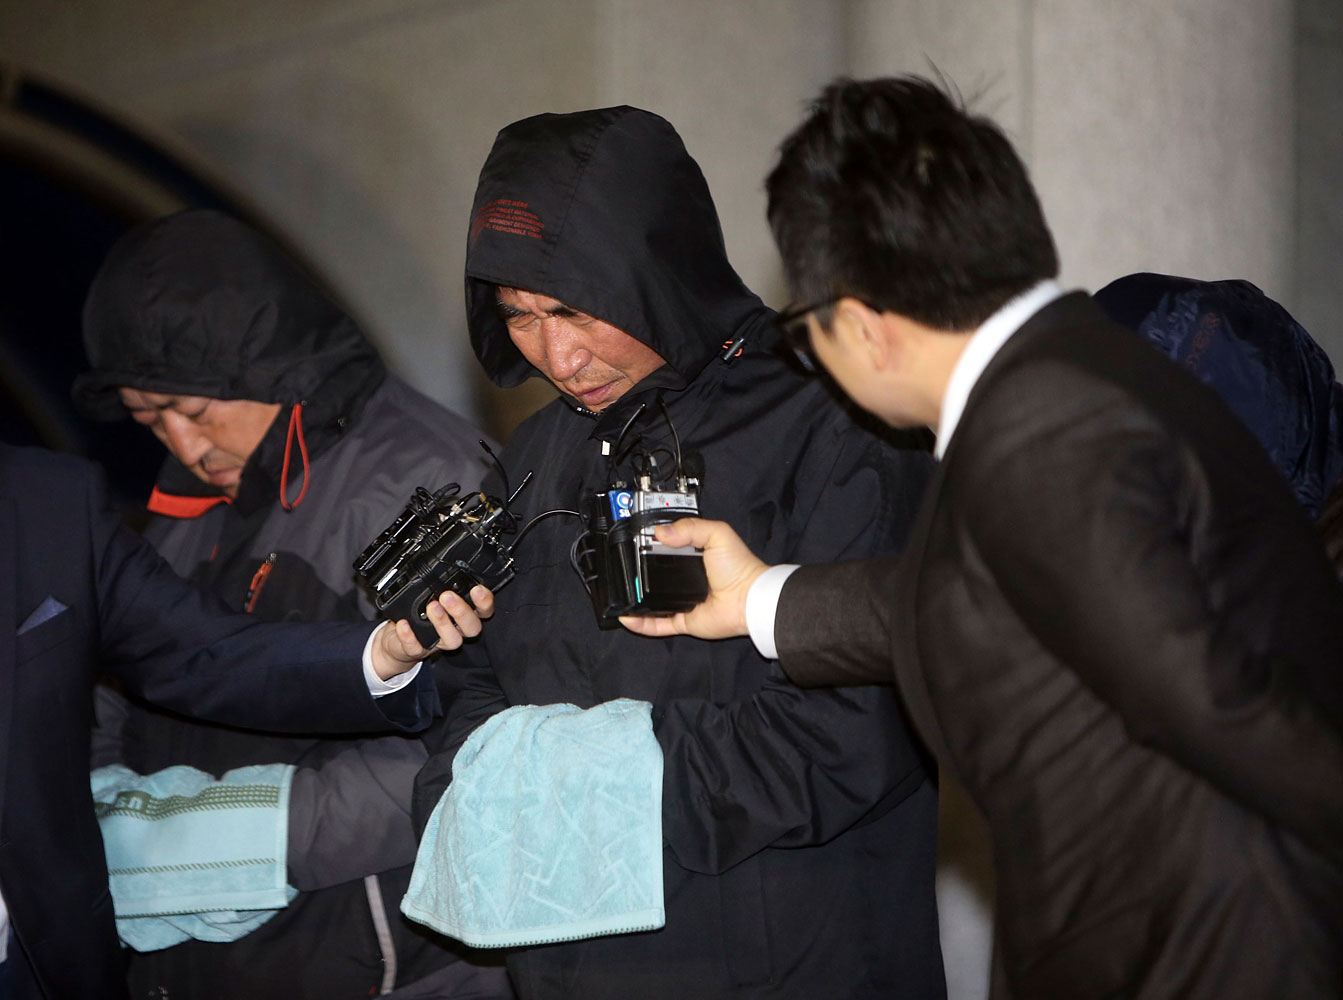 Lee Joon-seok, captain of South Korean ferry Sewol, which sank at sea off Jindo,  walks out of court in Mokpo, South Korea, on April 19, 2014